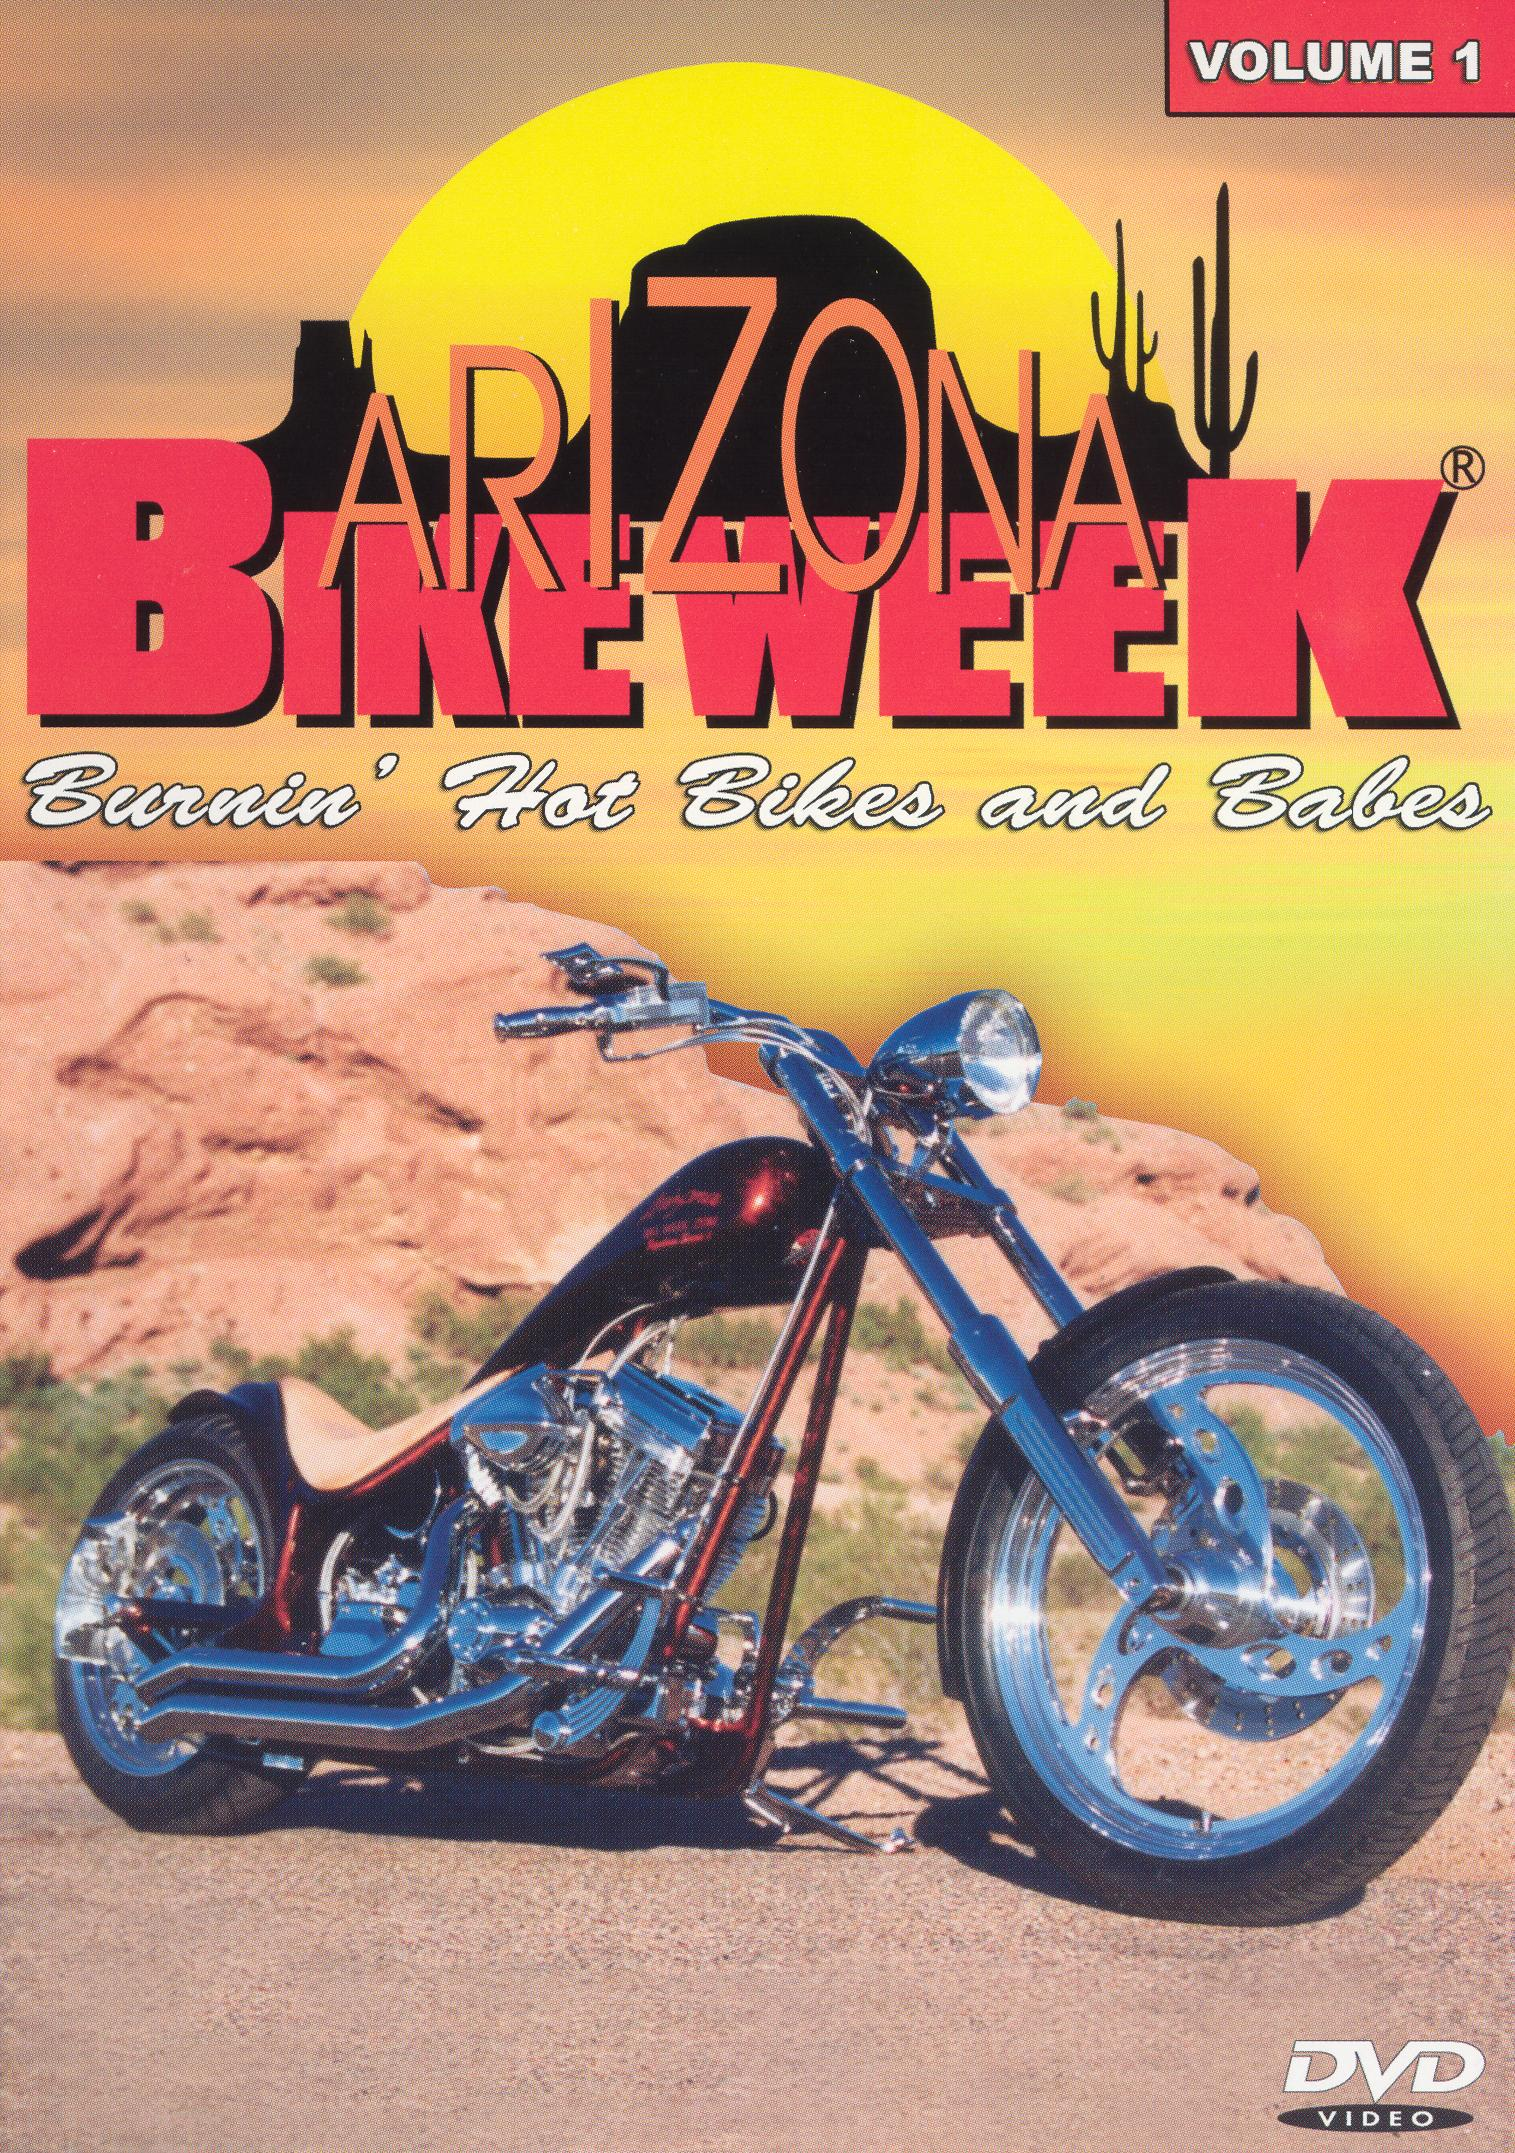 Arizona Bike Week, Vol. 1